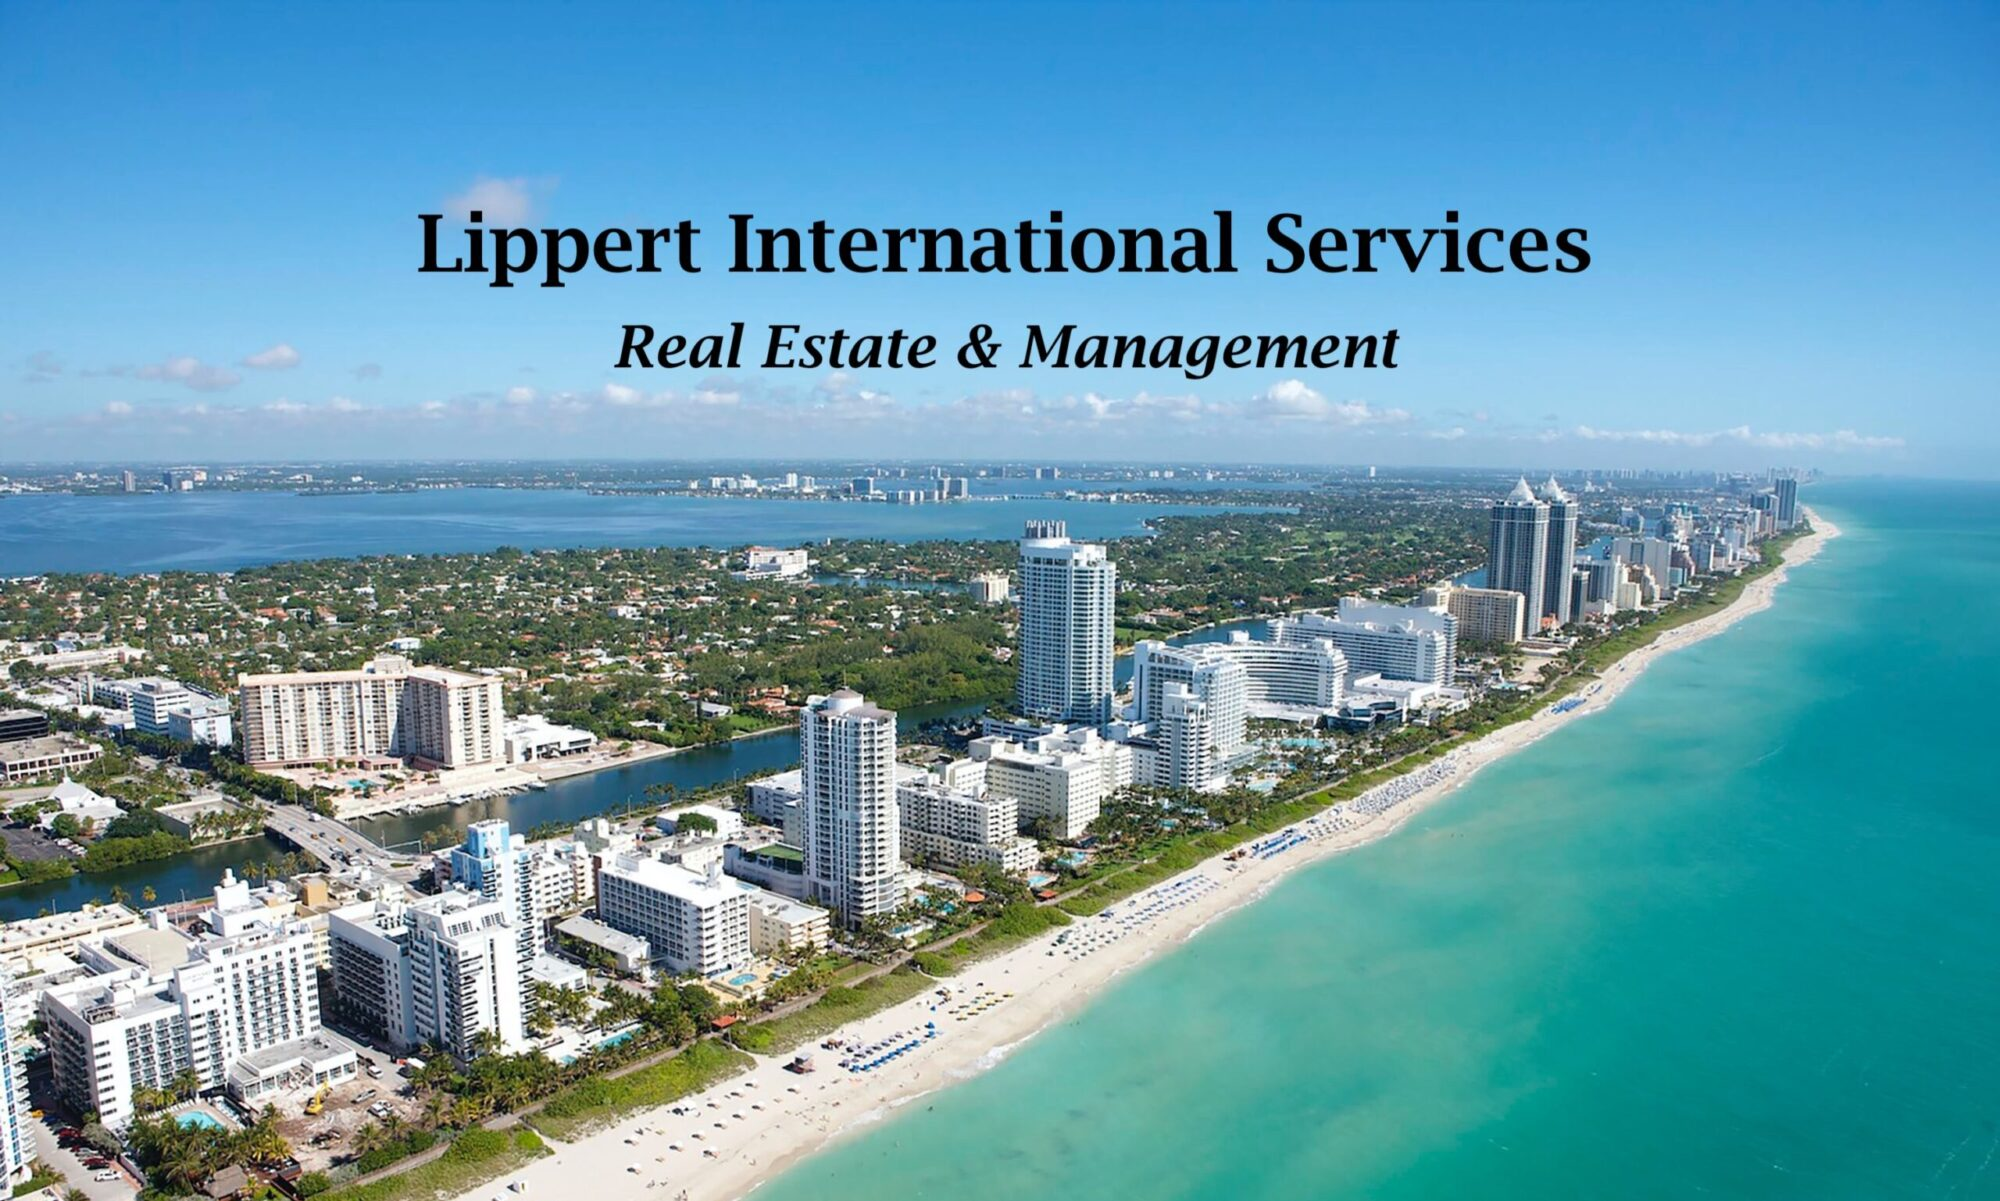 Lippert International Services